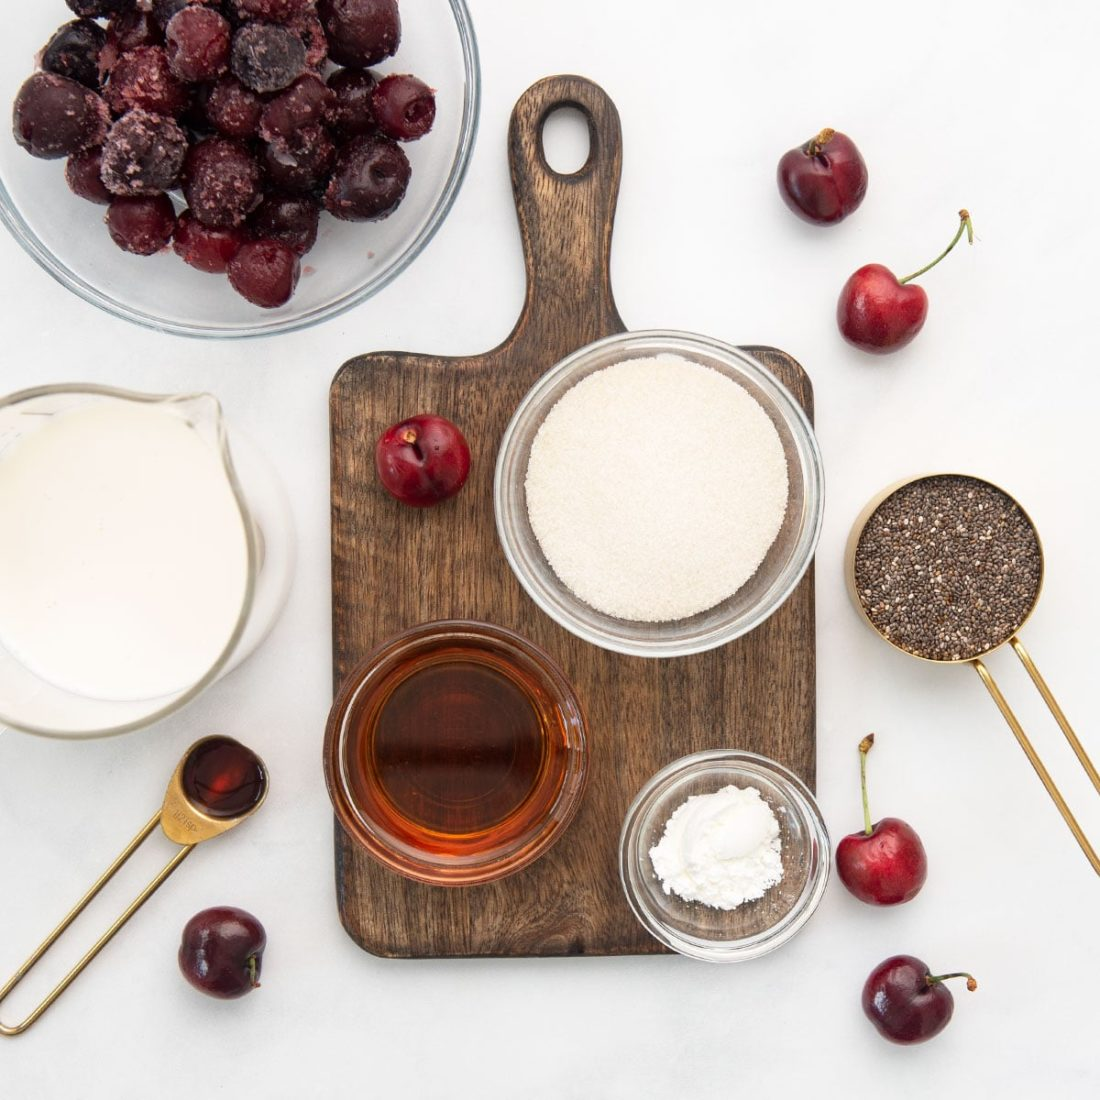 maple syrup, cherries, almond milk, vanilla extract, cane sugar, and chia seeds on wooden cutting board on white background